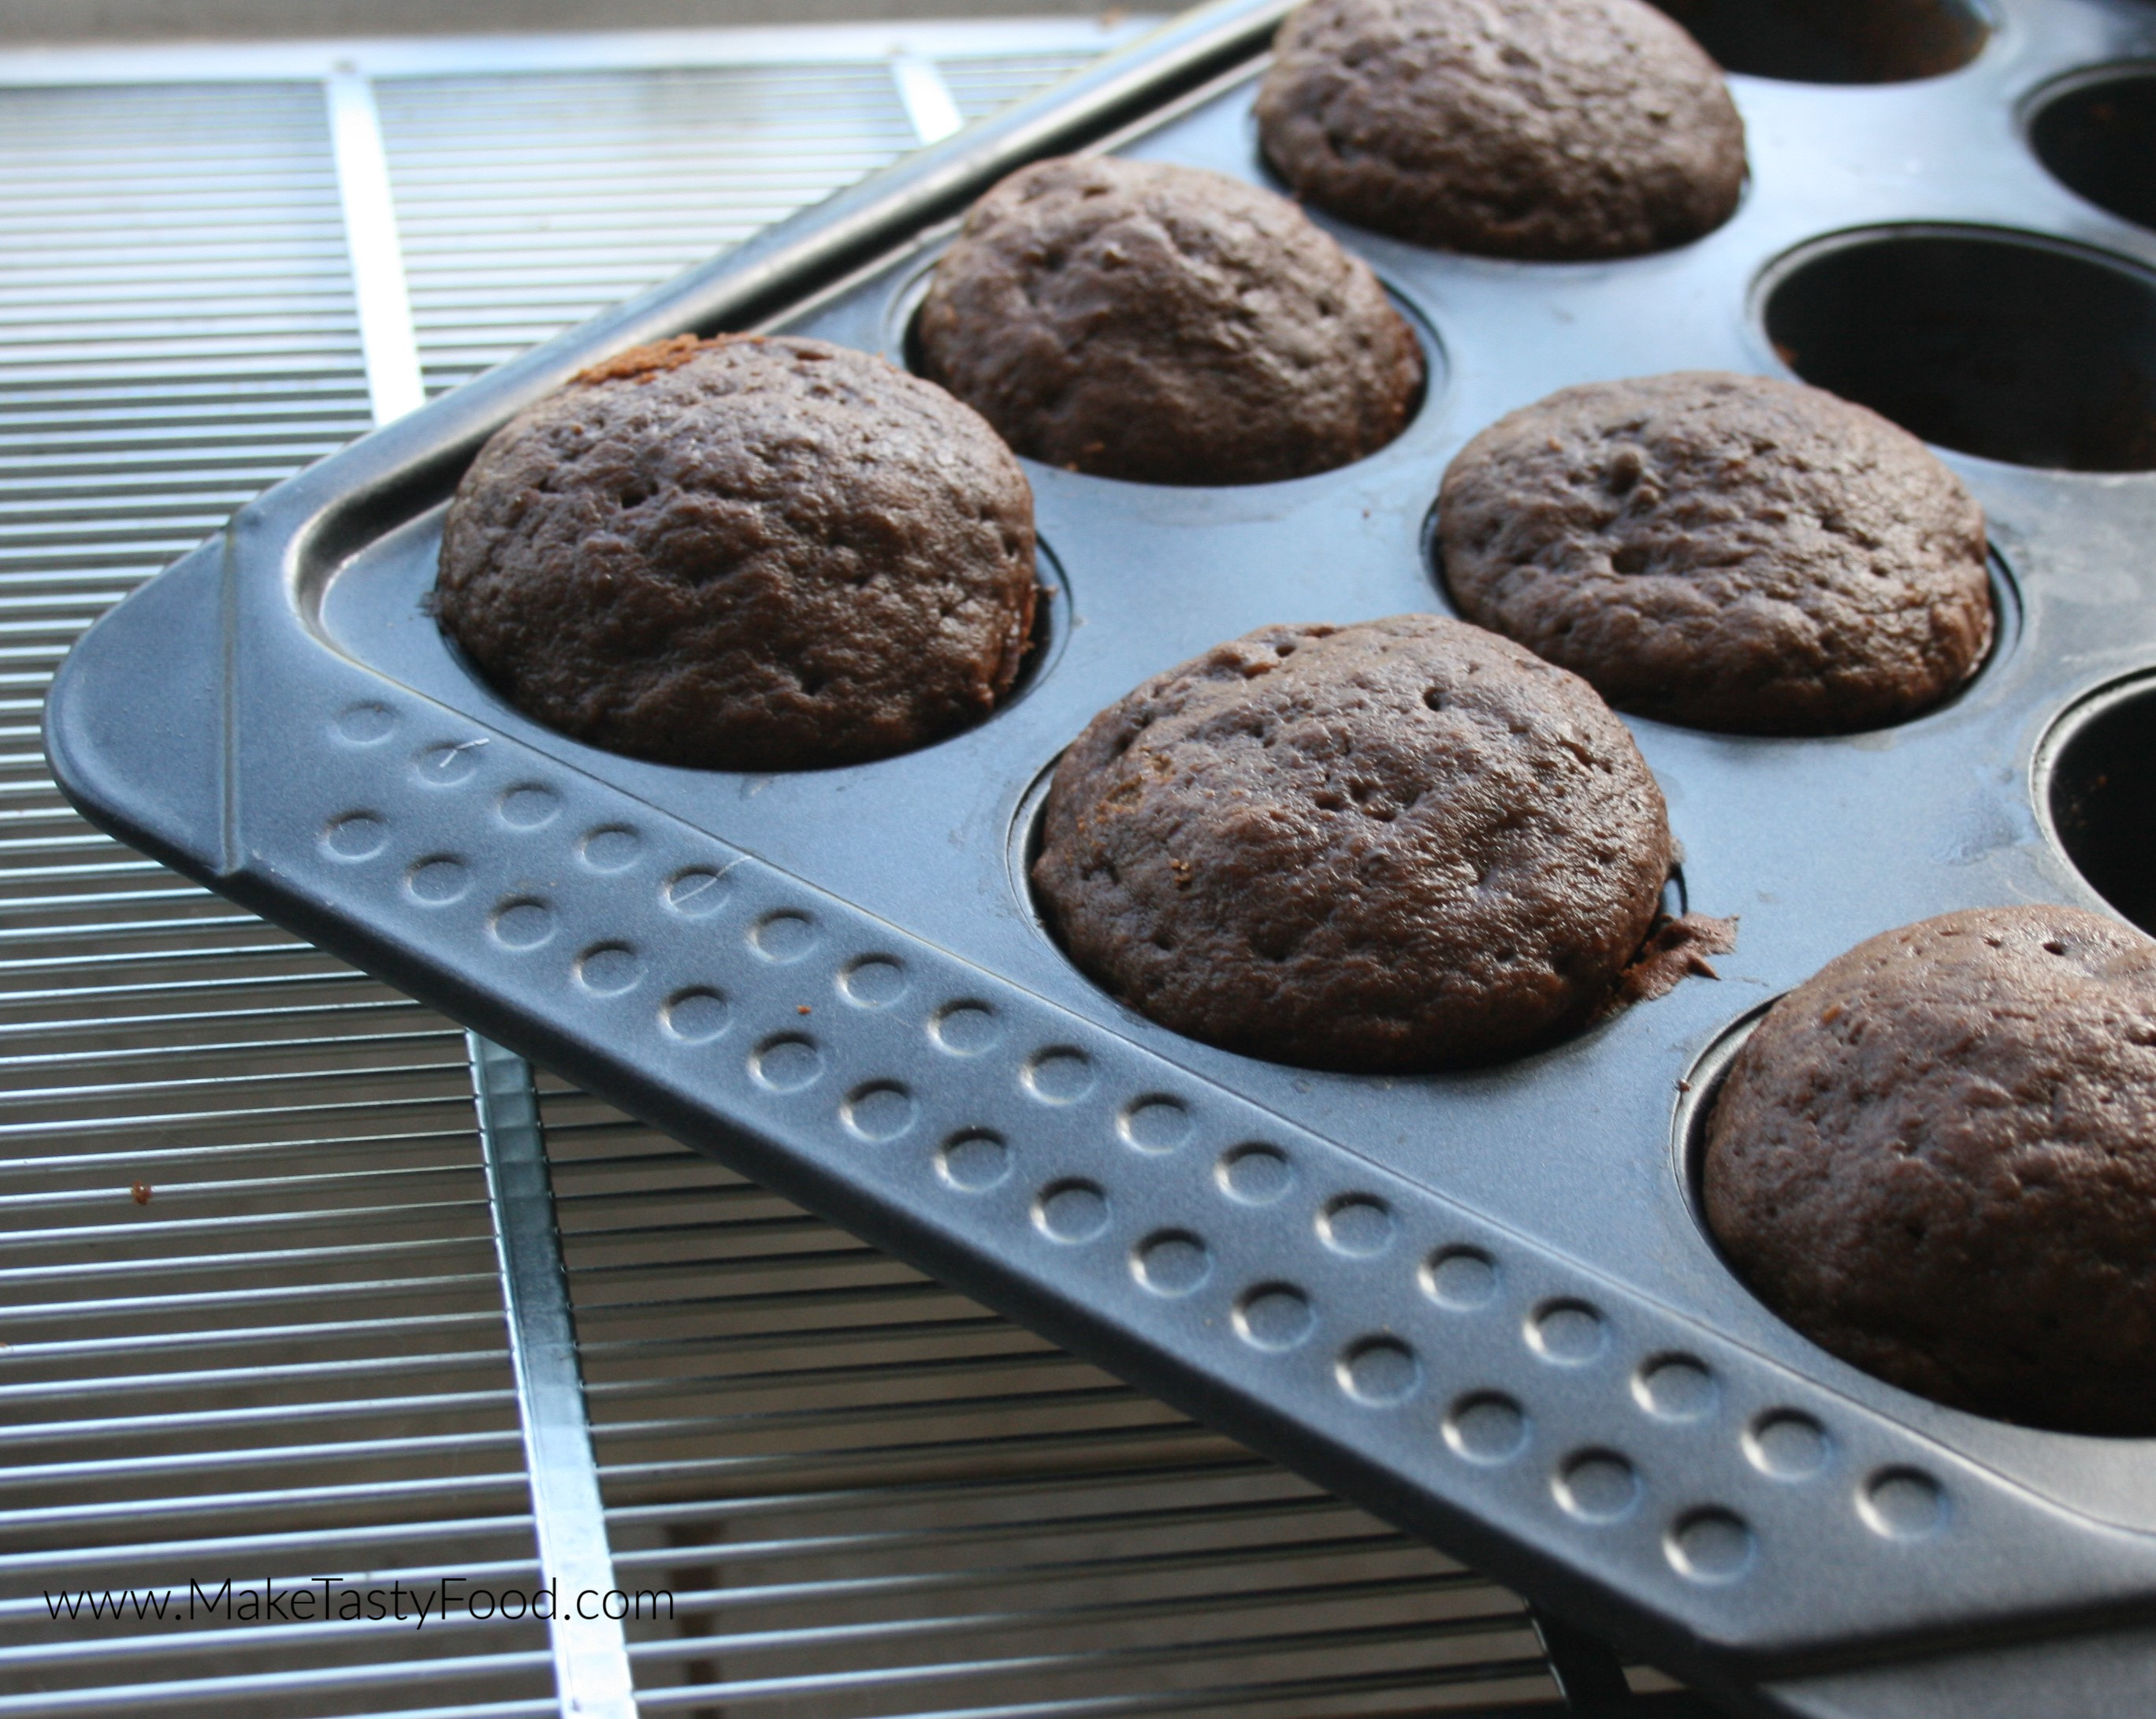 a muffin pan filled with chocolate banana muffins